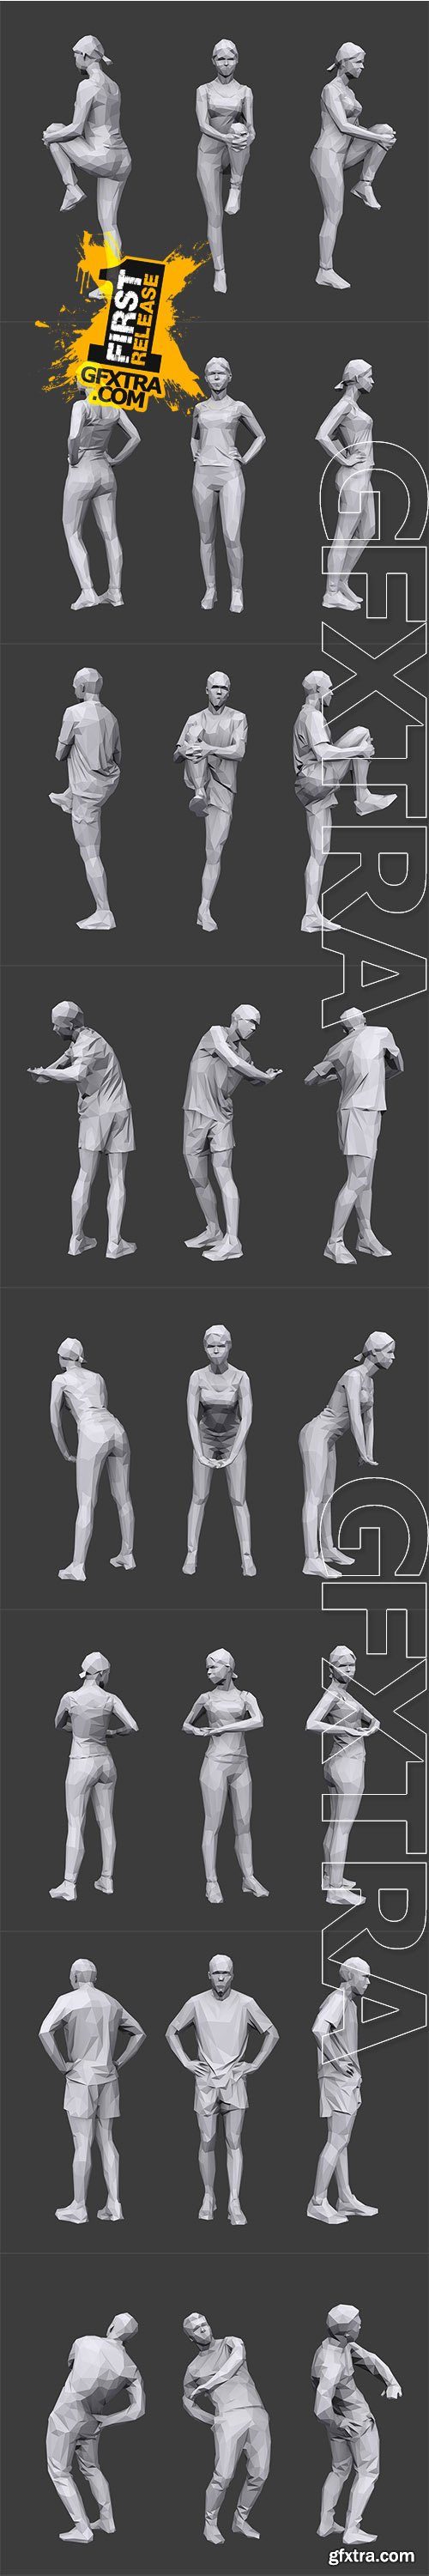 Cubebrush - Lowpoly People Fitness Pack